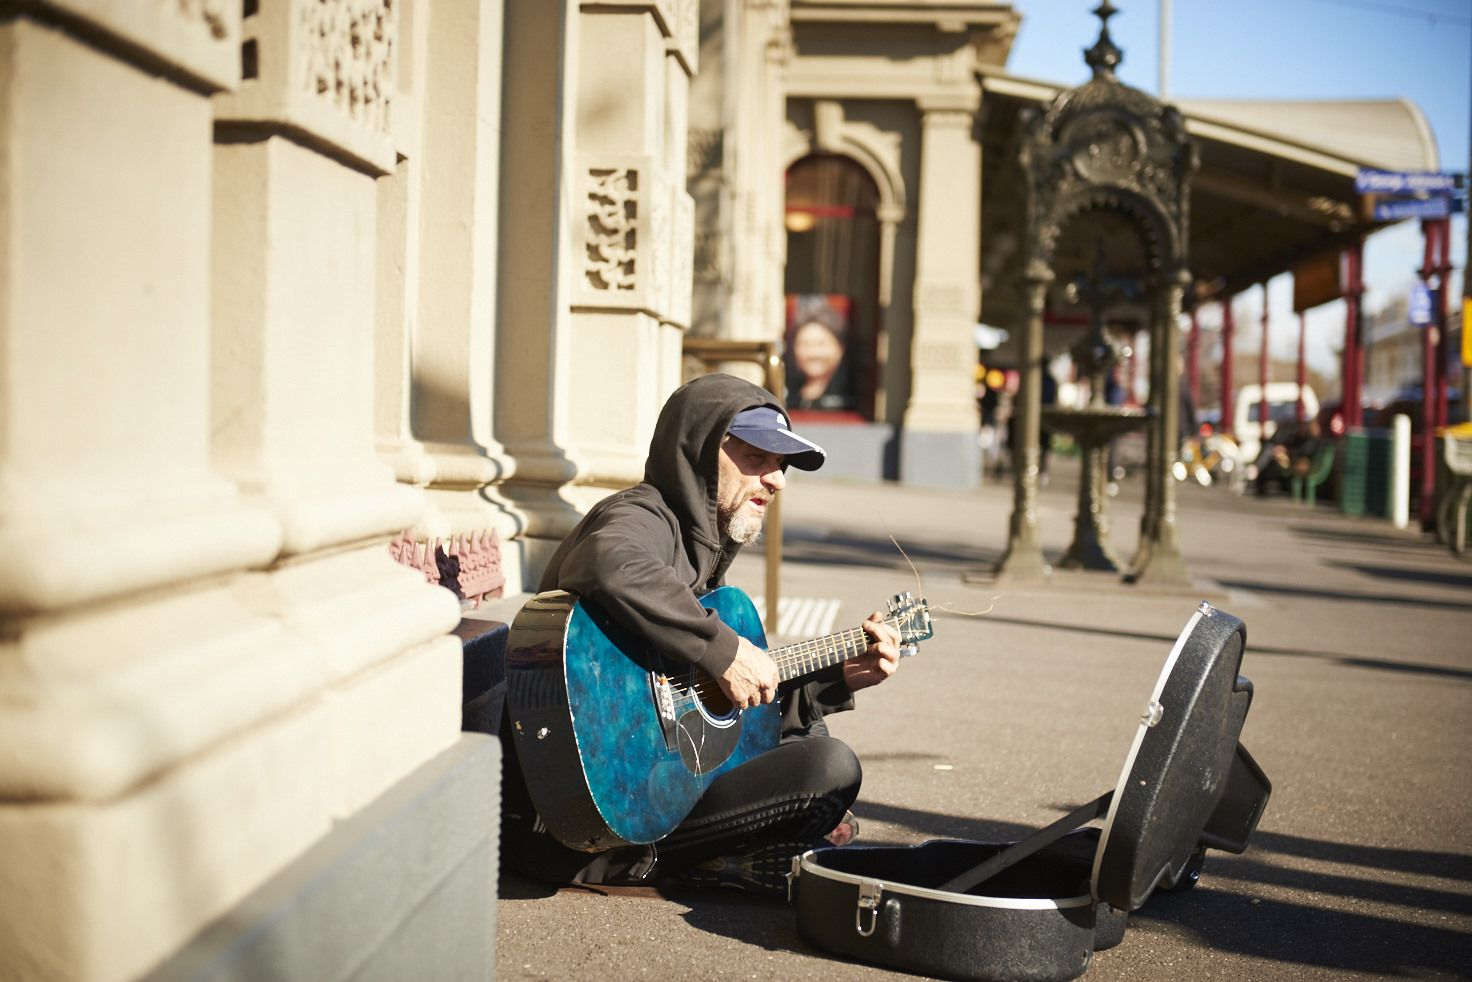 Homeless person busking